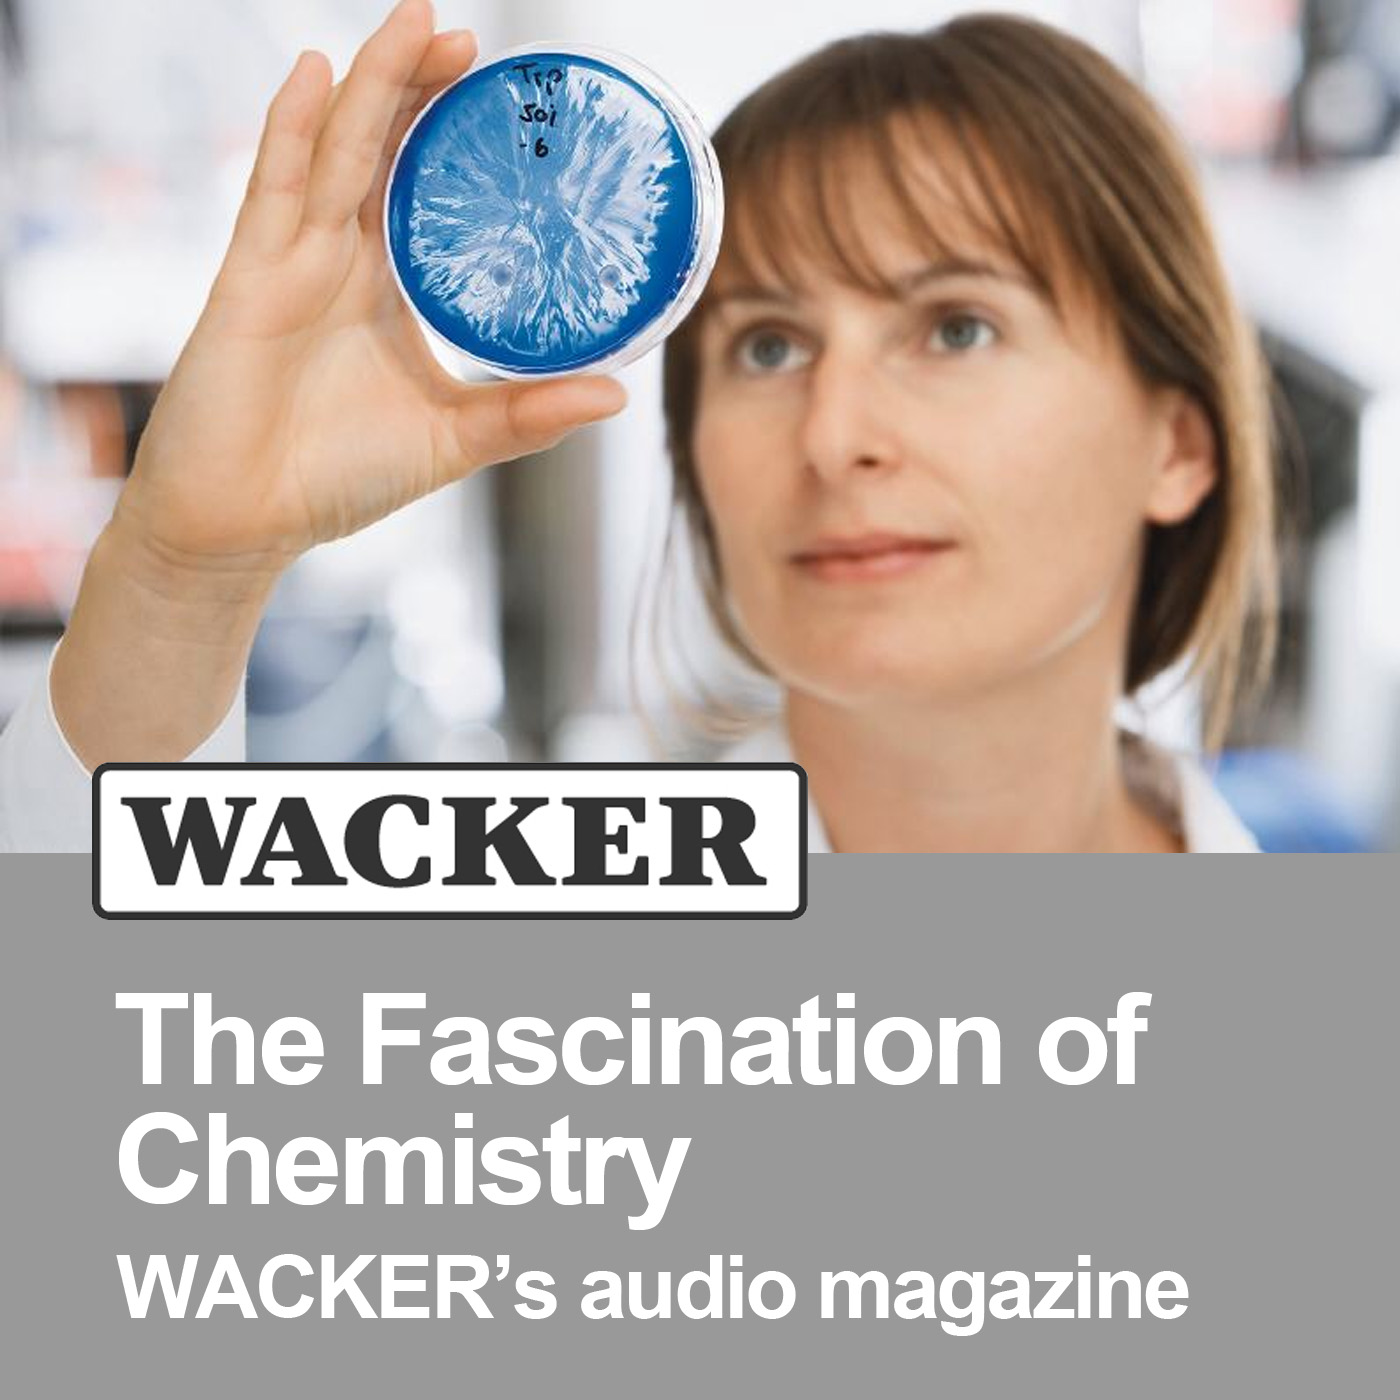 WACKER - The Fascination of Chemistry